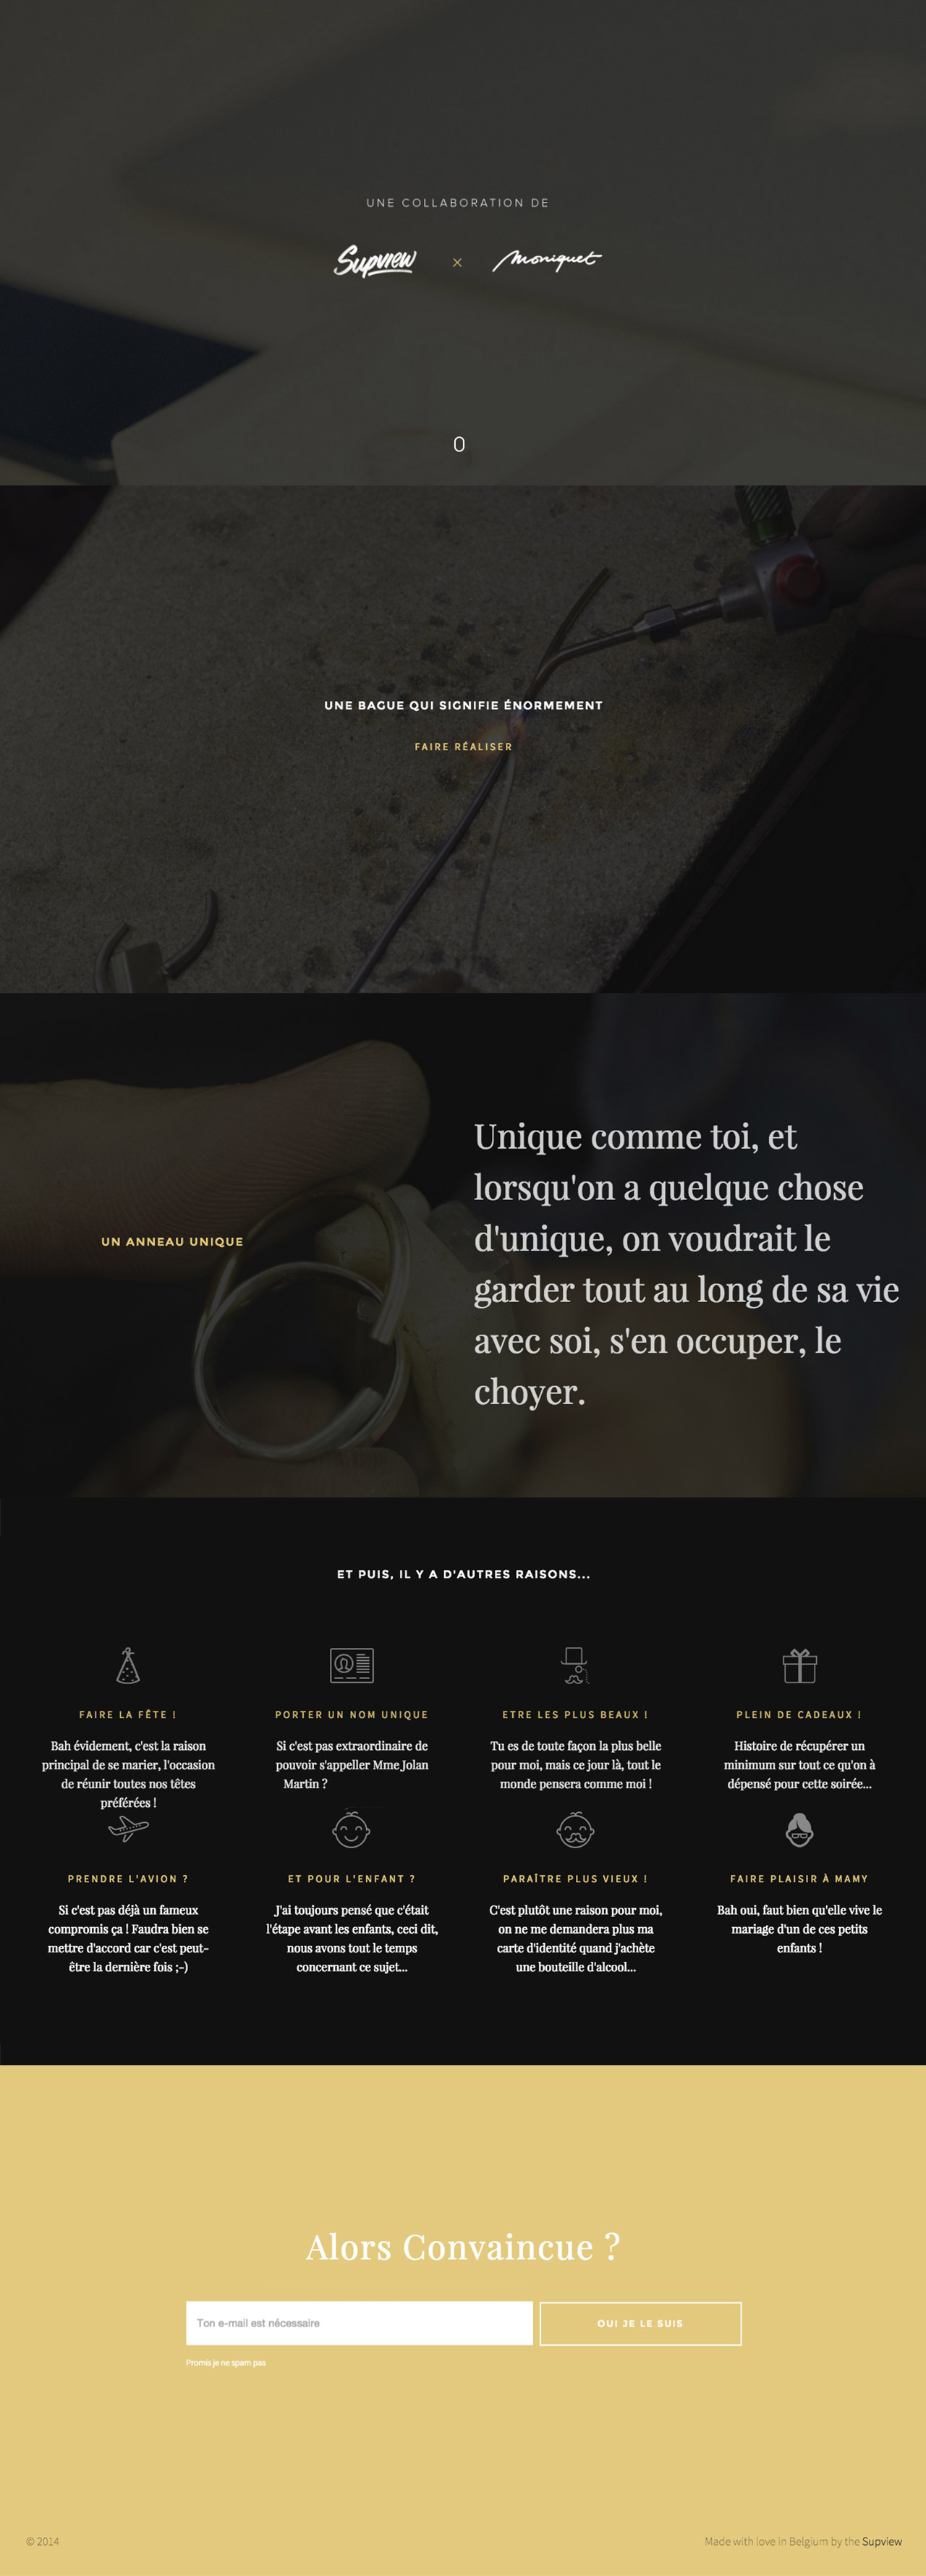 Online Proposal of François Martin Website Screenshot